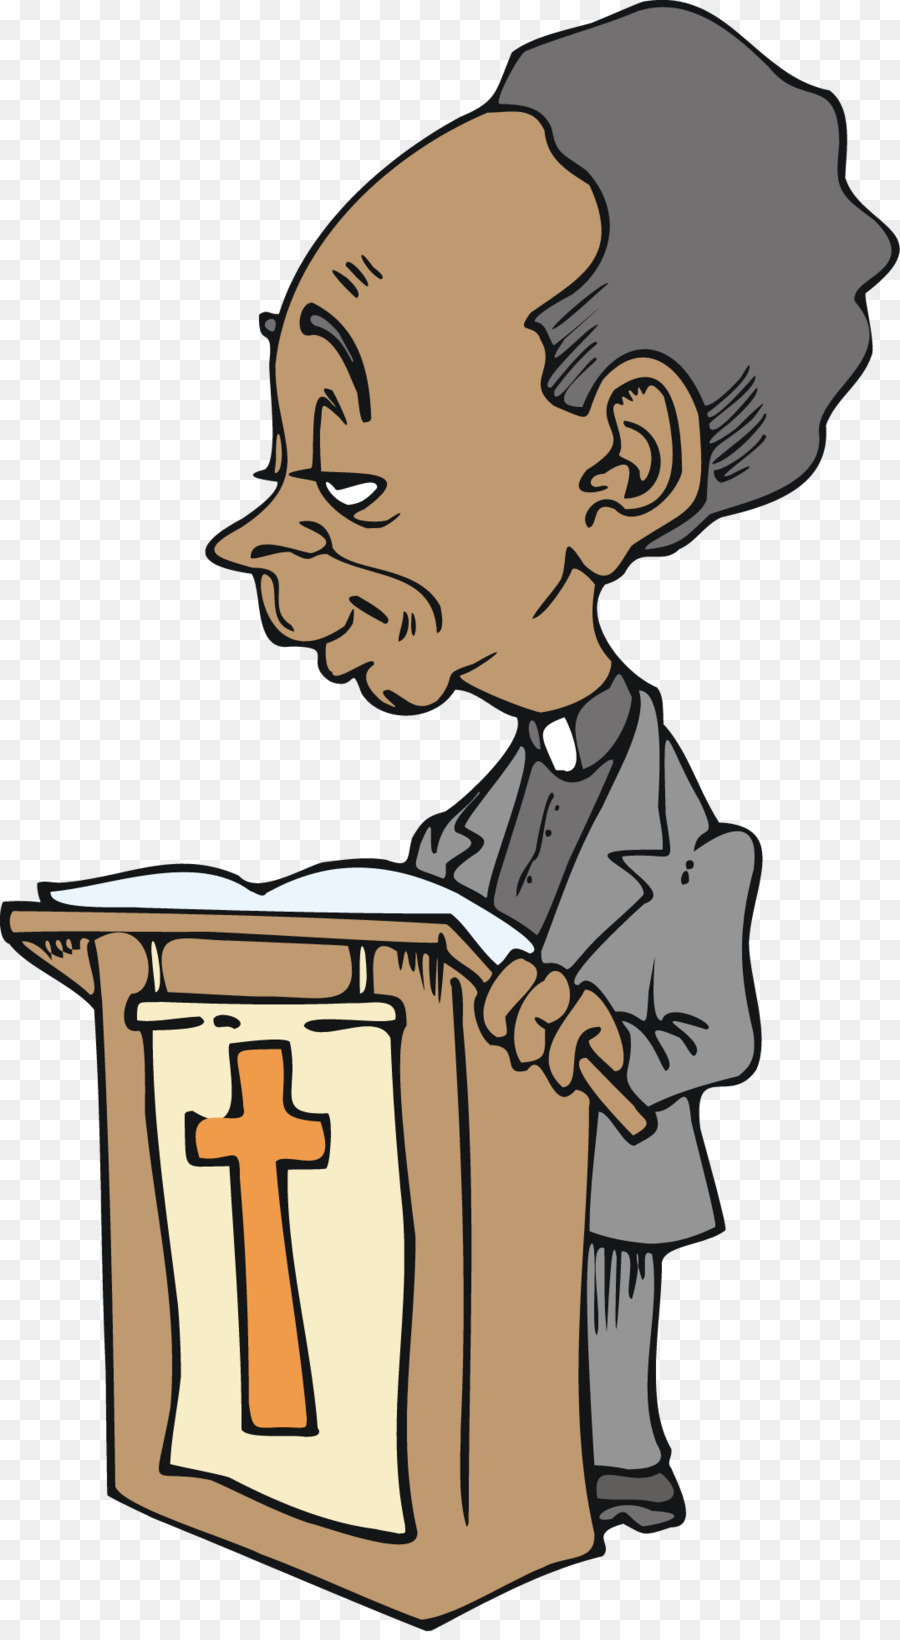 Black preacher clipart clip art royalty free download Church Cartoon png download - 1077*1953 - Free Transparent Preacher ... clip art royalty free download